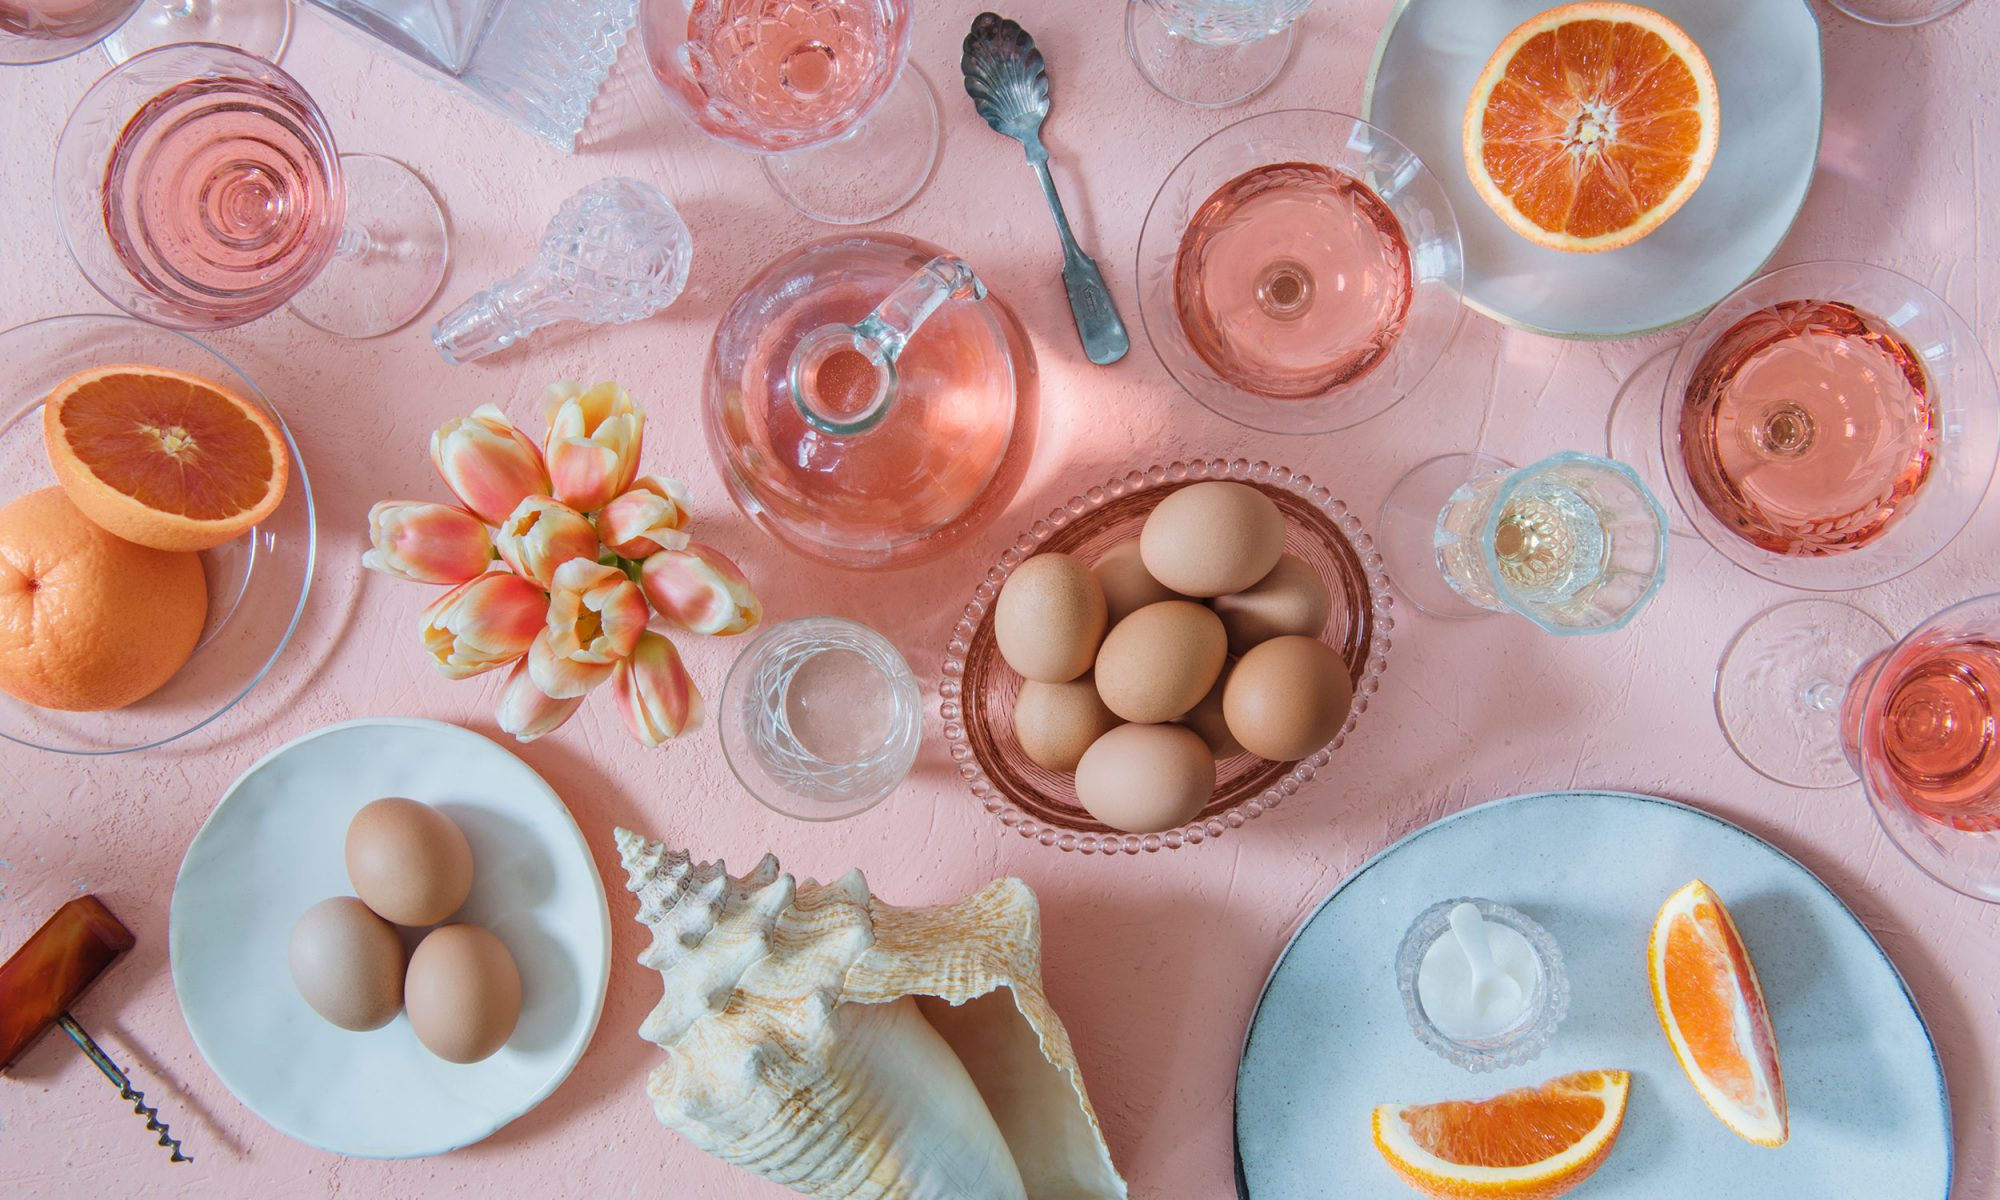 All-pink breakfast spread with eggs, grapefruit, rosé and a conch shell